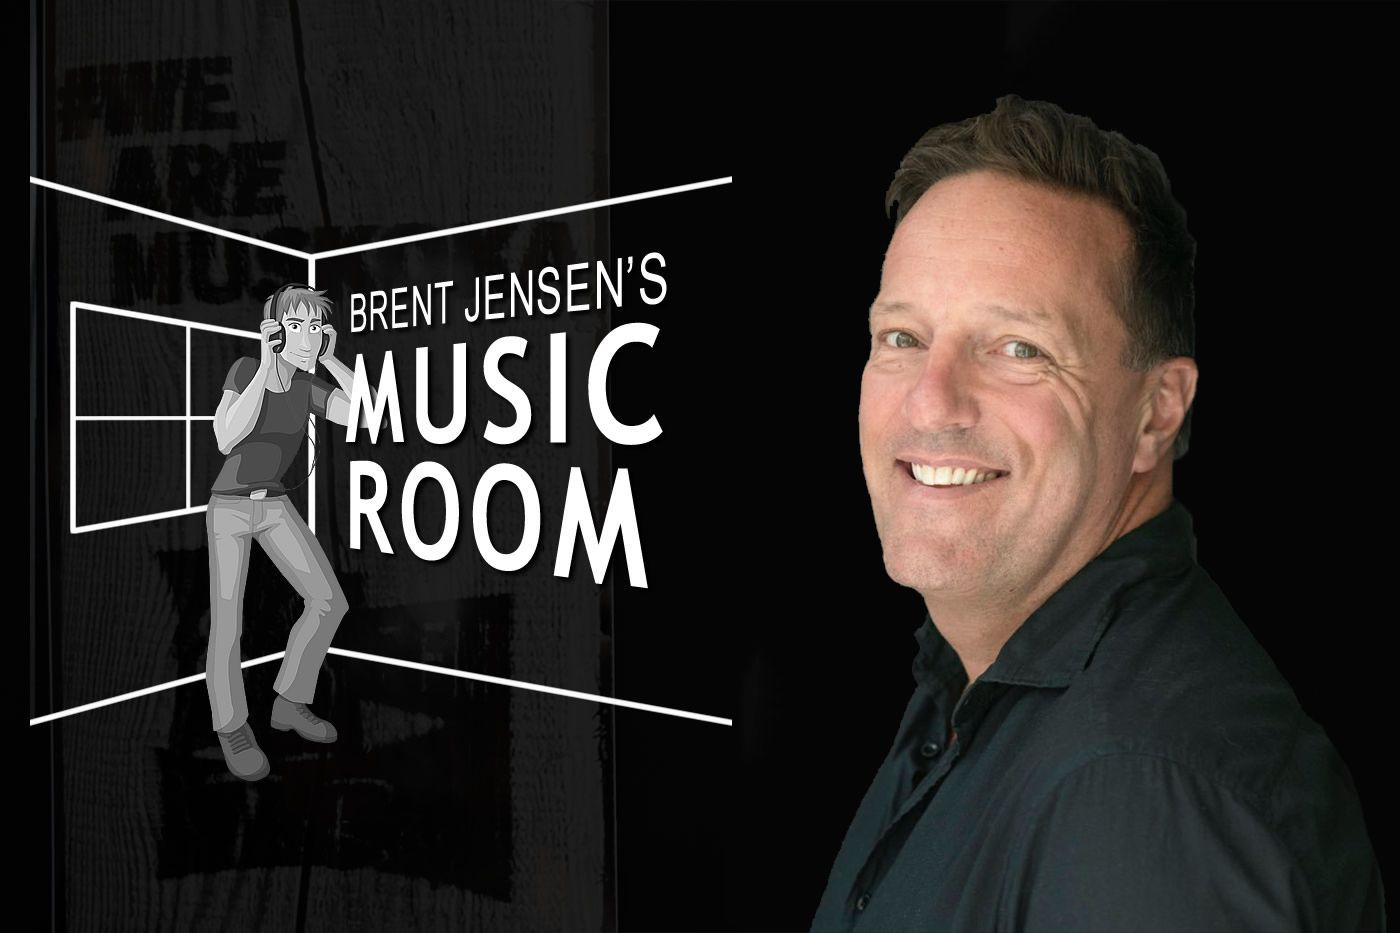 Brent Jensen's Music Room